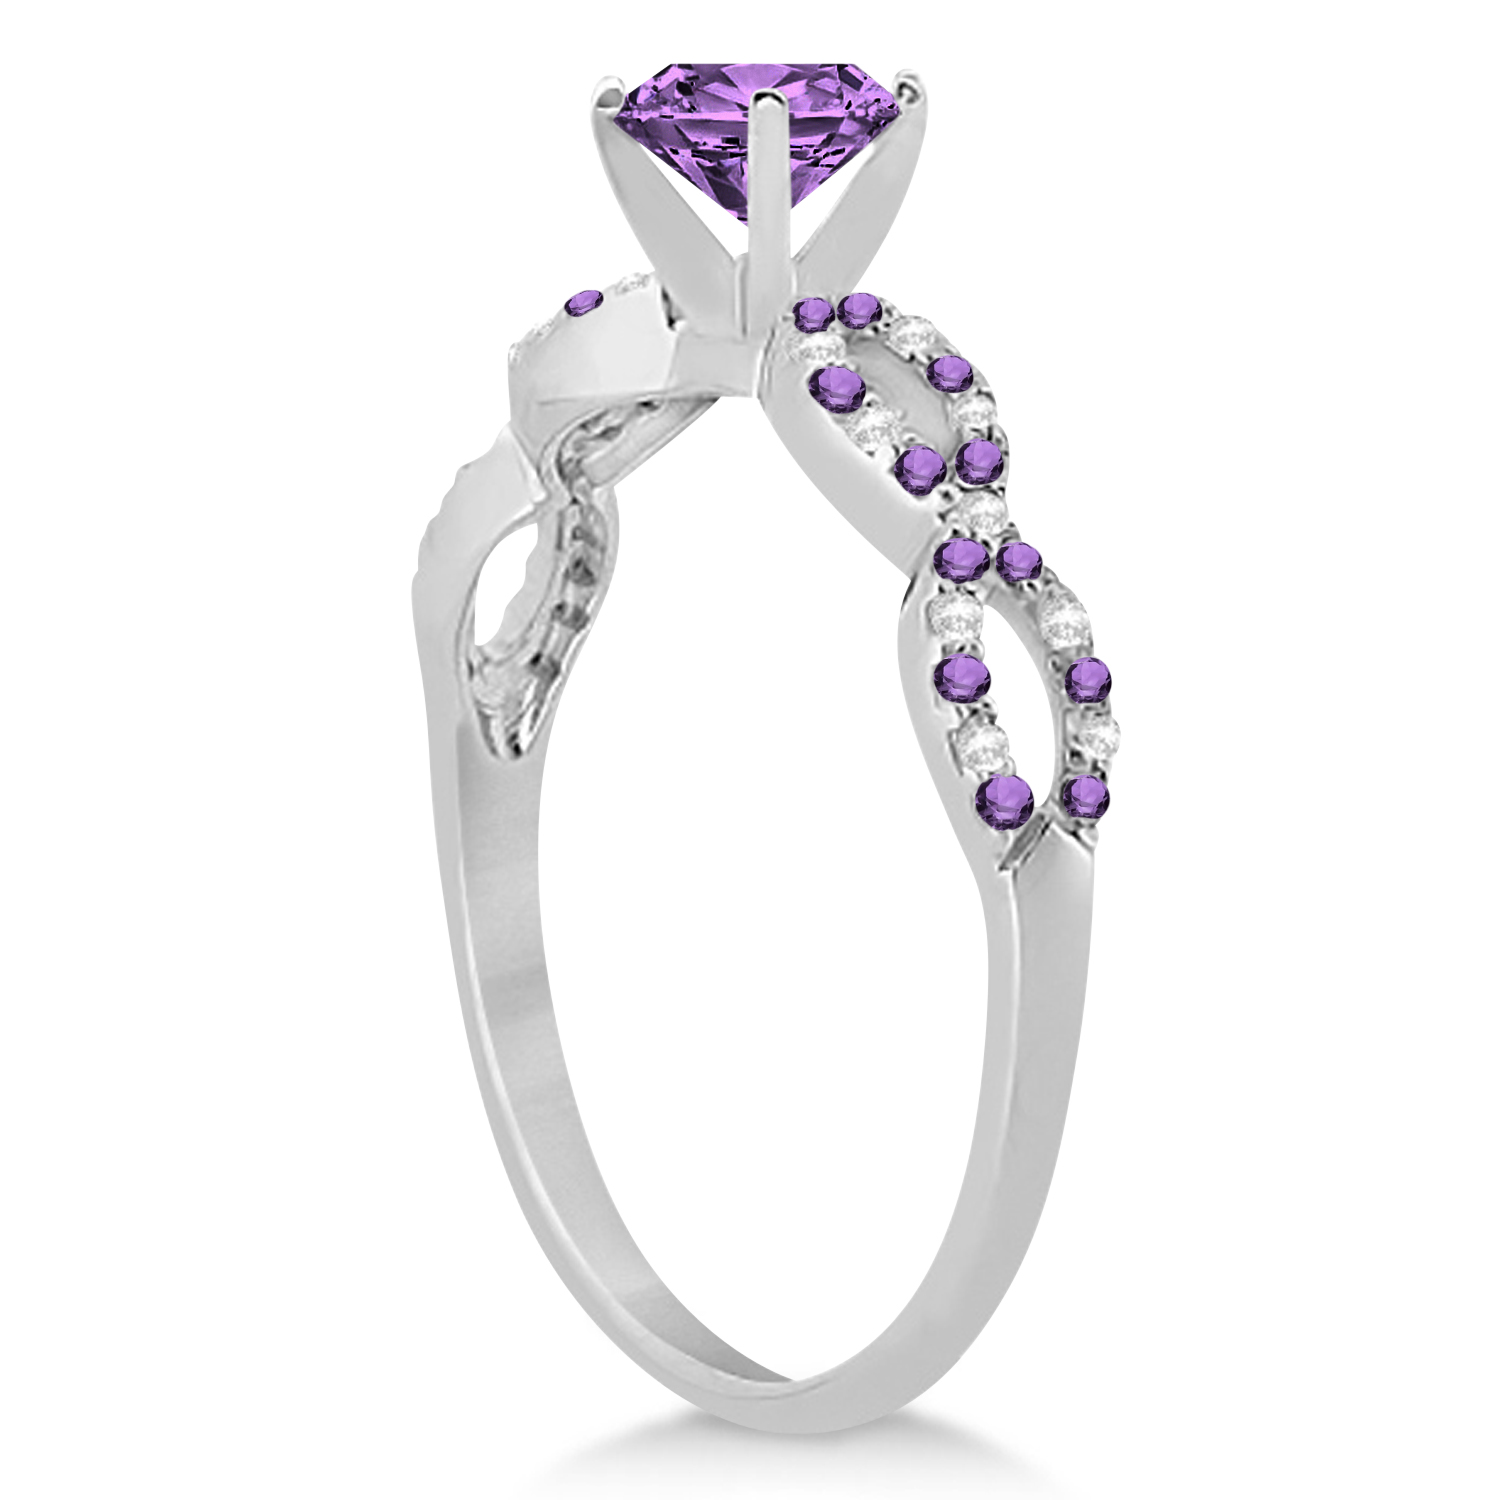 Infinity Diamond & Amethyst Engagement Ring 14K White Gold 1.05ct